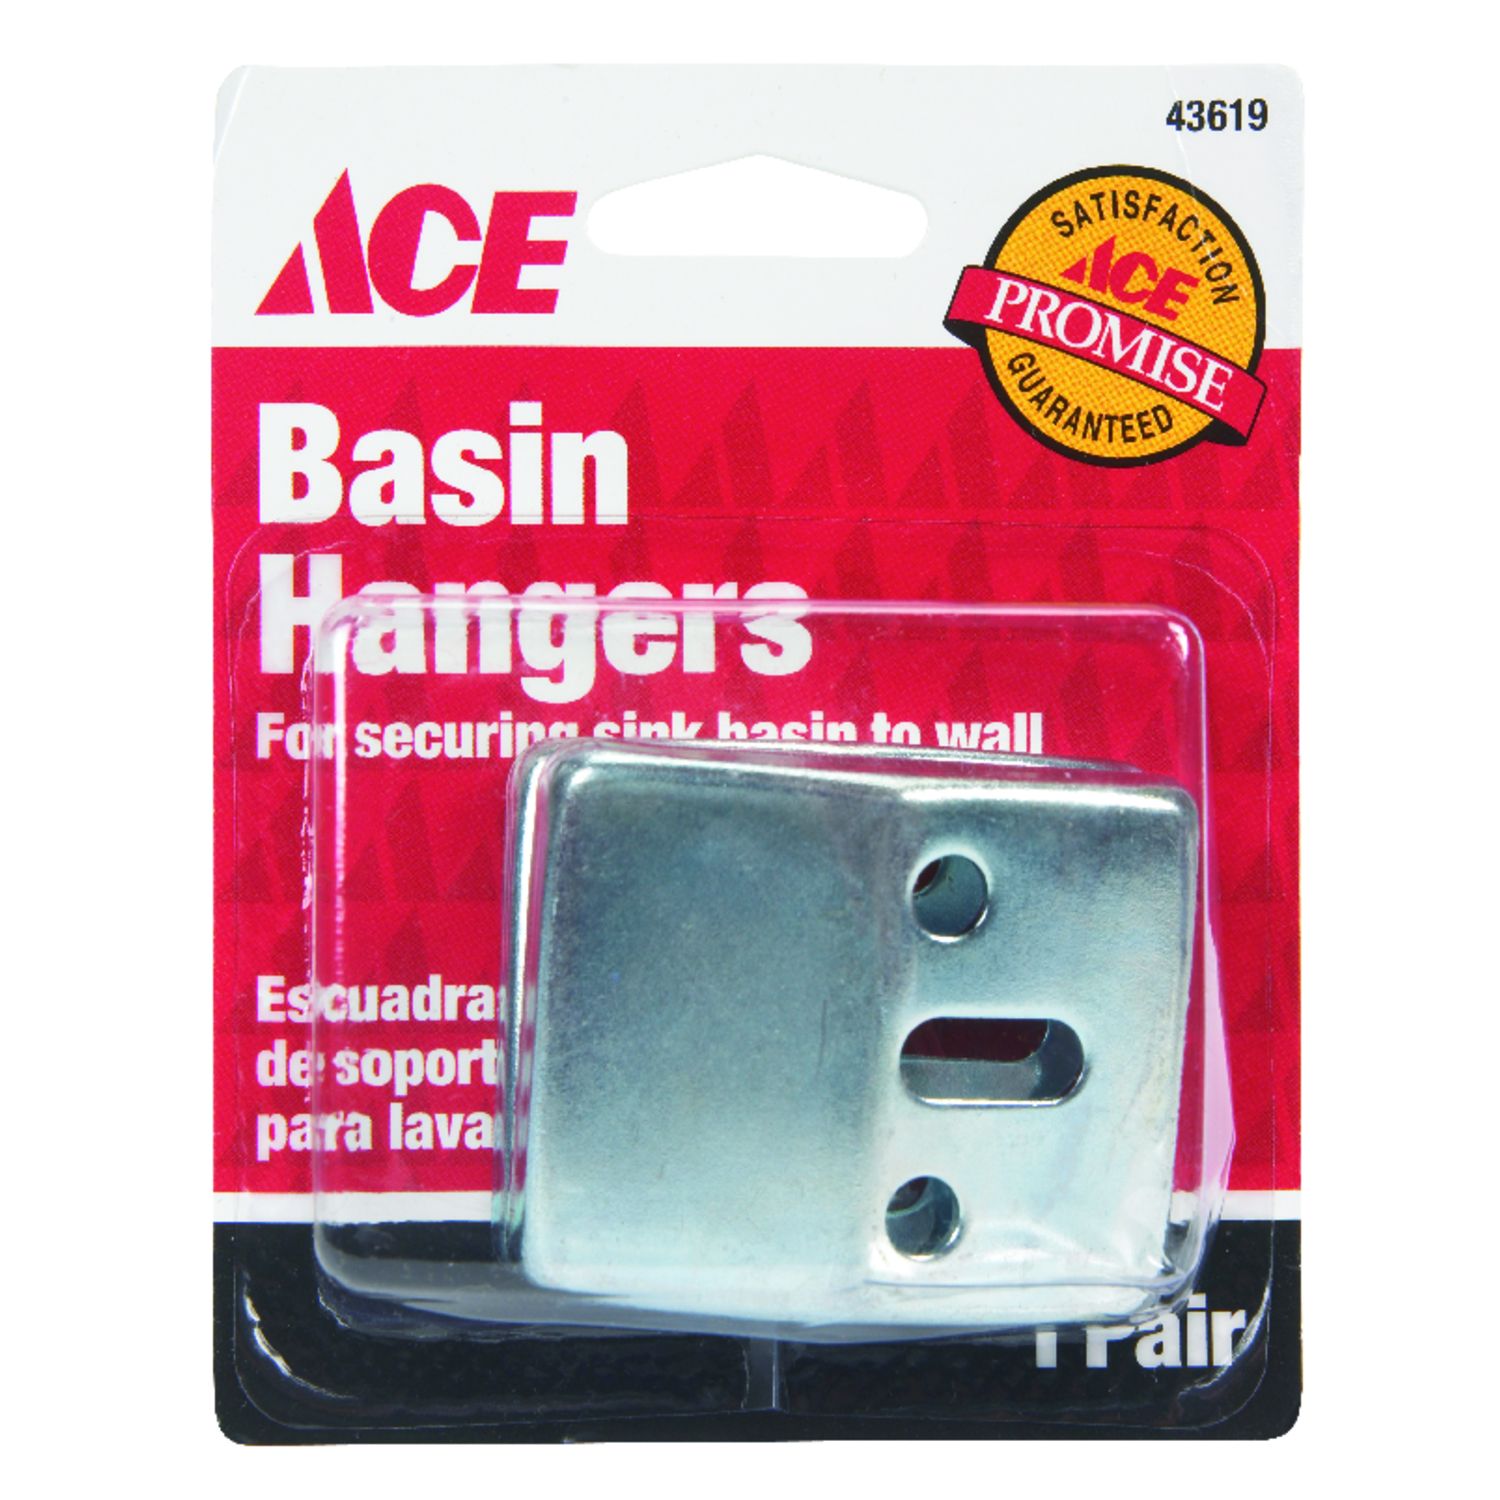 Ace  Basin Hangers  Steel